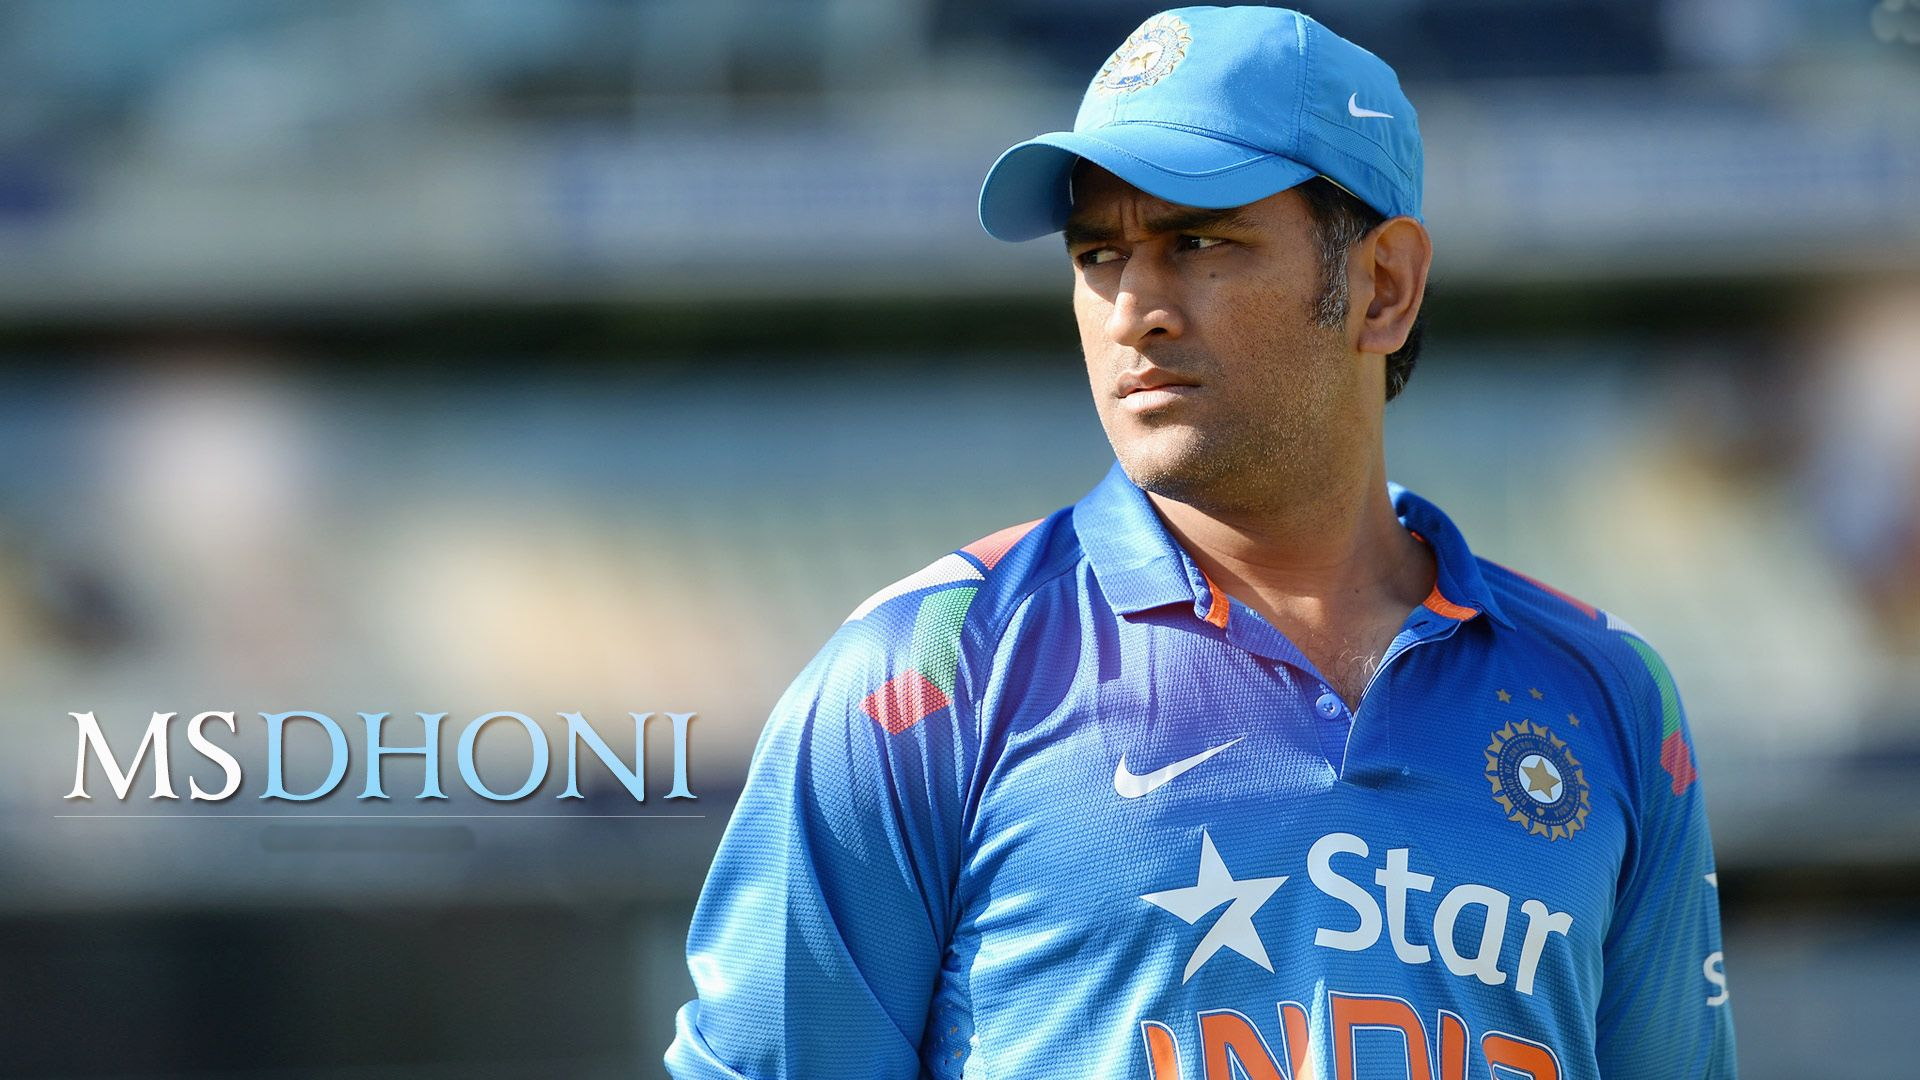 Top Mahendra Singh Dhoni Hd Wallpapers Images And Latest